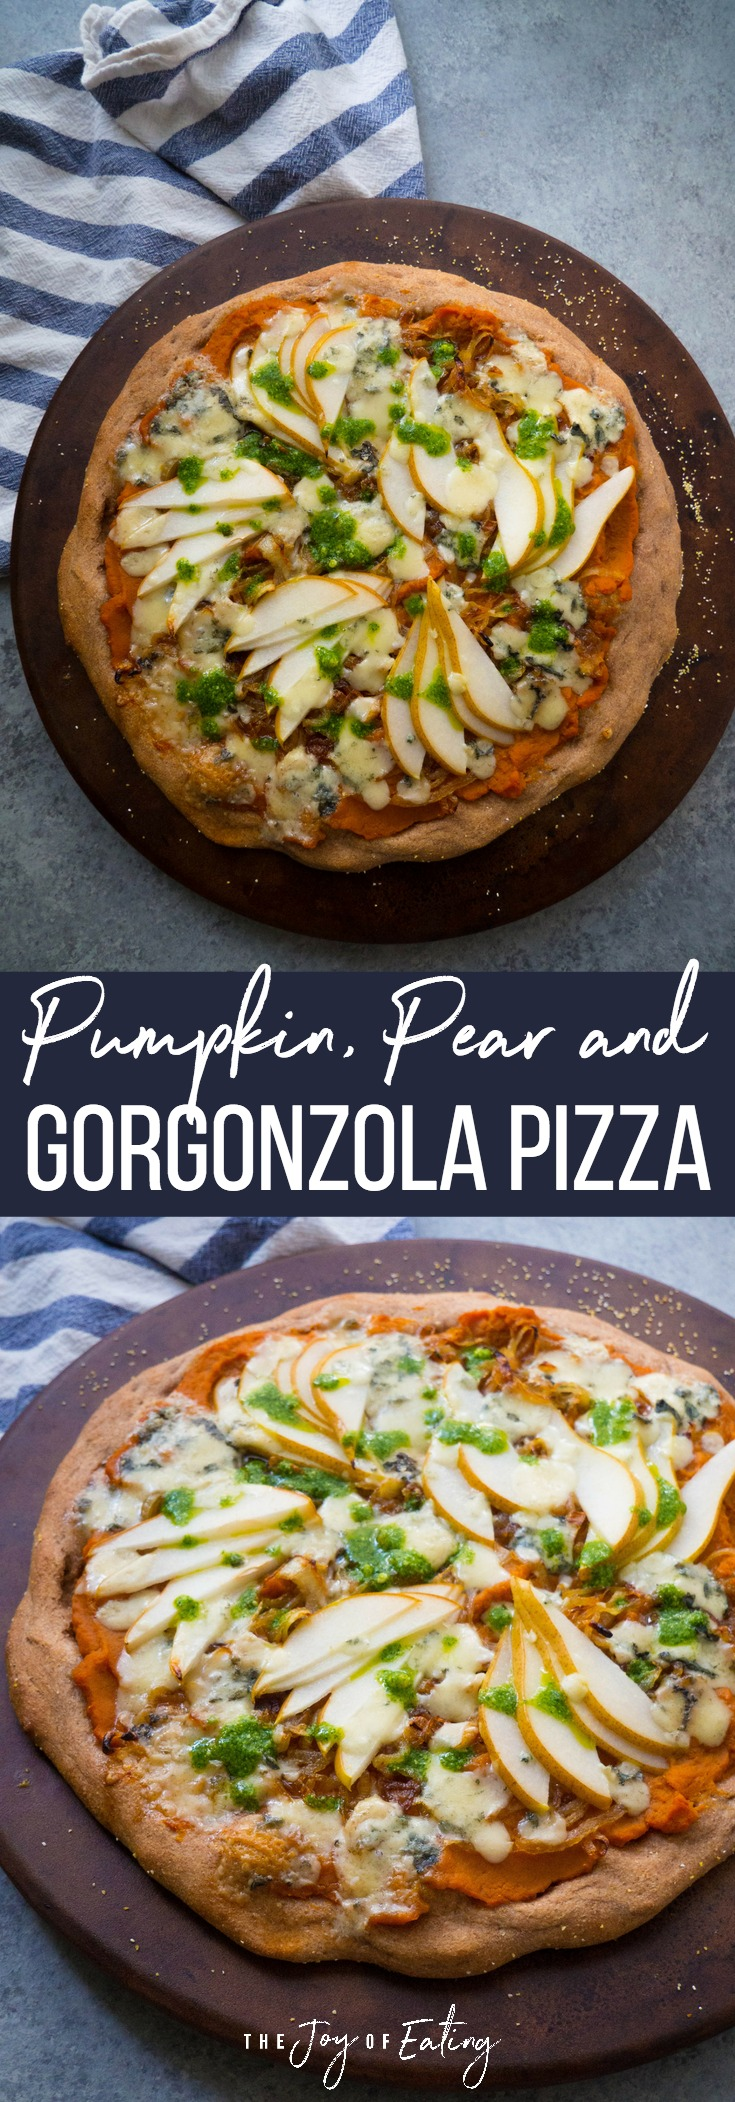 This easy pumpkin, pear and gorgonzola pizza with caramelized onions is super easy to make! Perfect weeknight dinner for fall! #pizza #fall #pumpkin #healthyrecipe